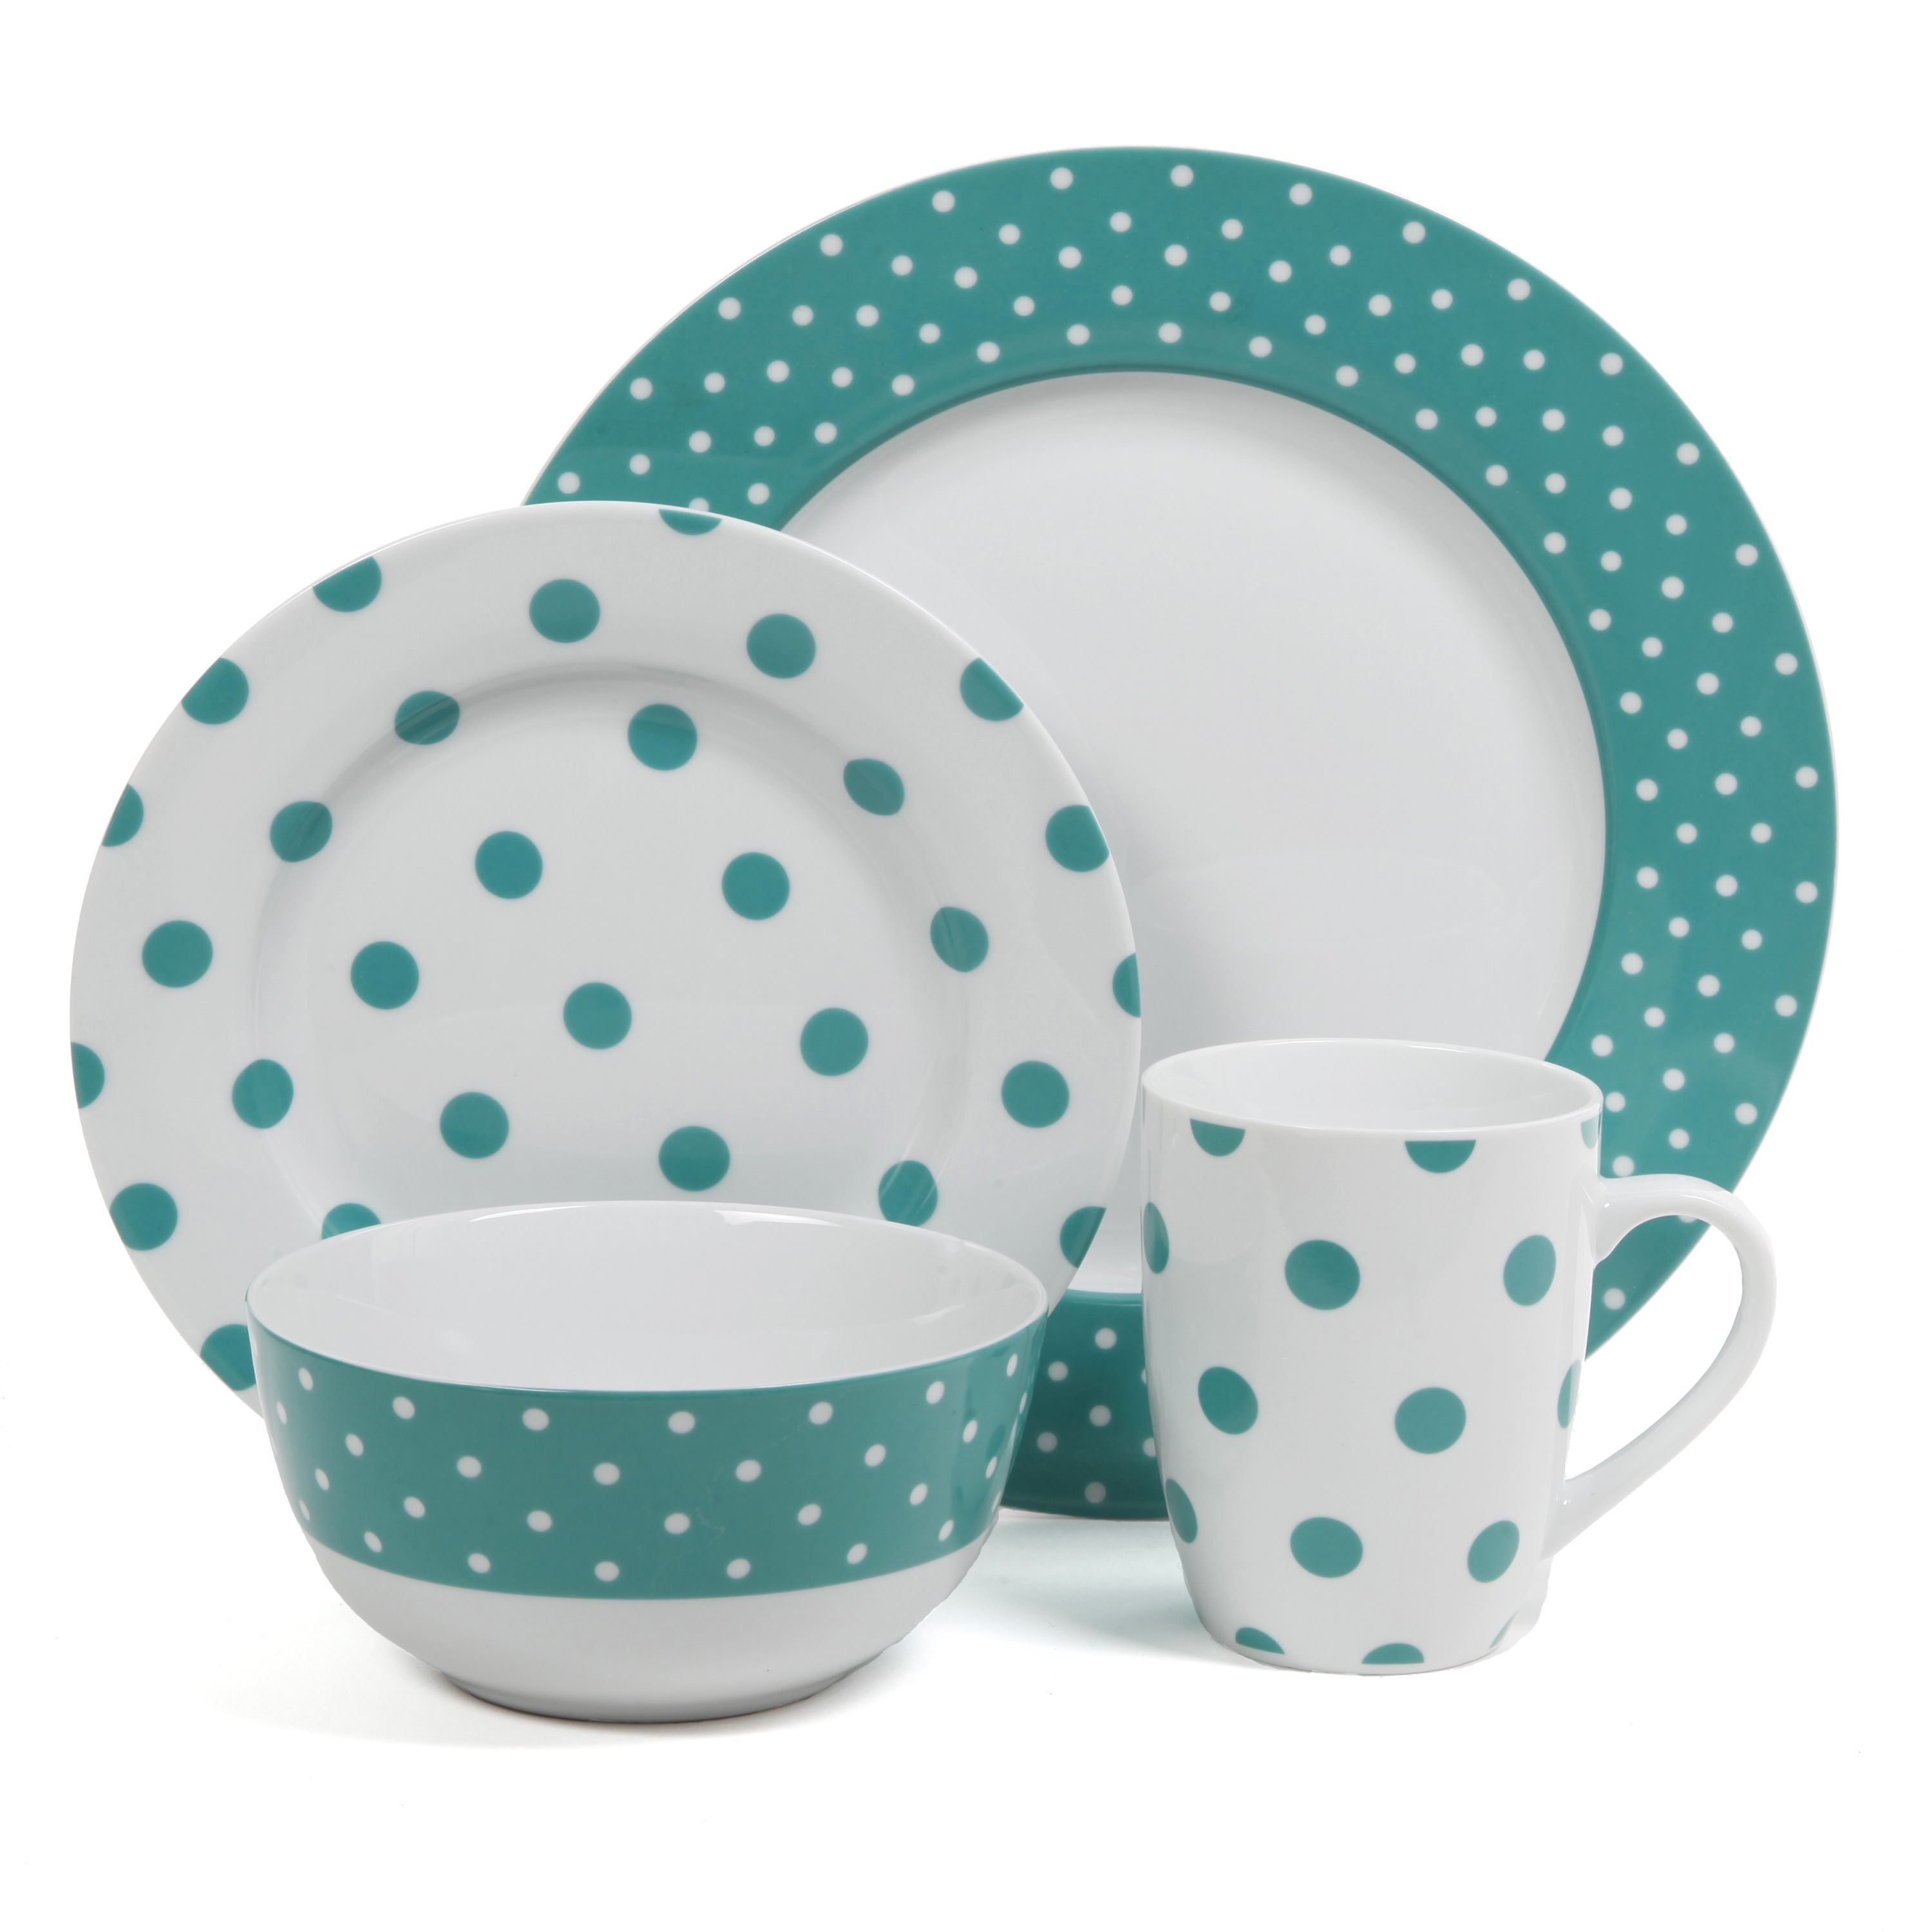 Casual Dinnerware For Less  sc 1 st  Pinterest & This bold 16-piece ceramic dinnerware set features a fun polka-dot ...